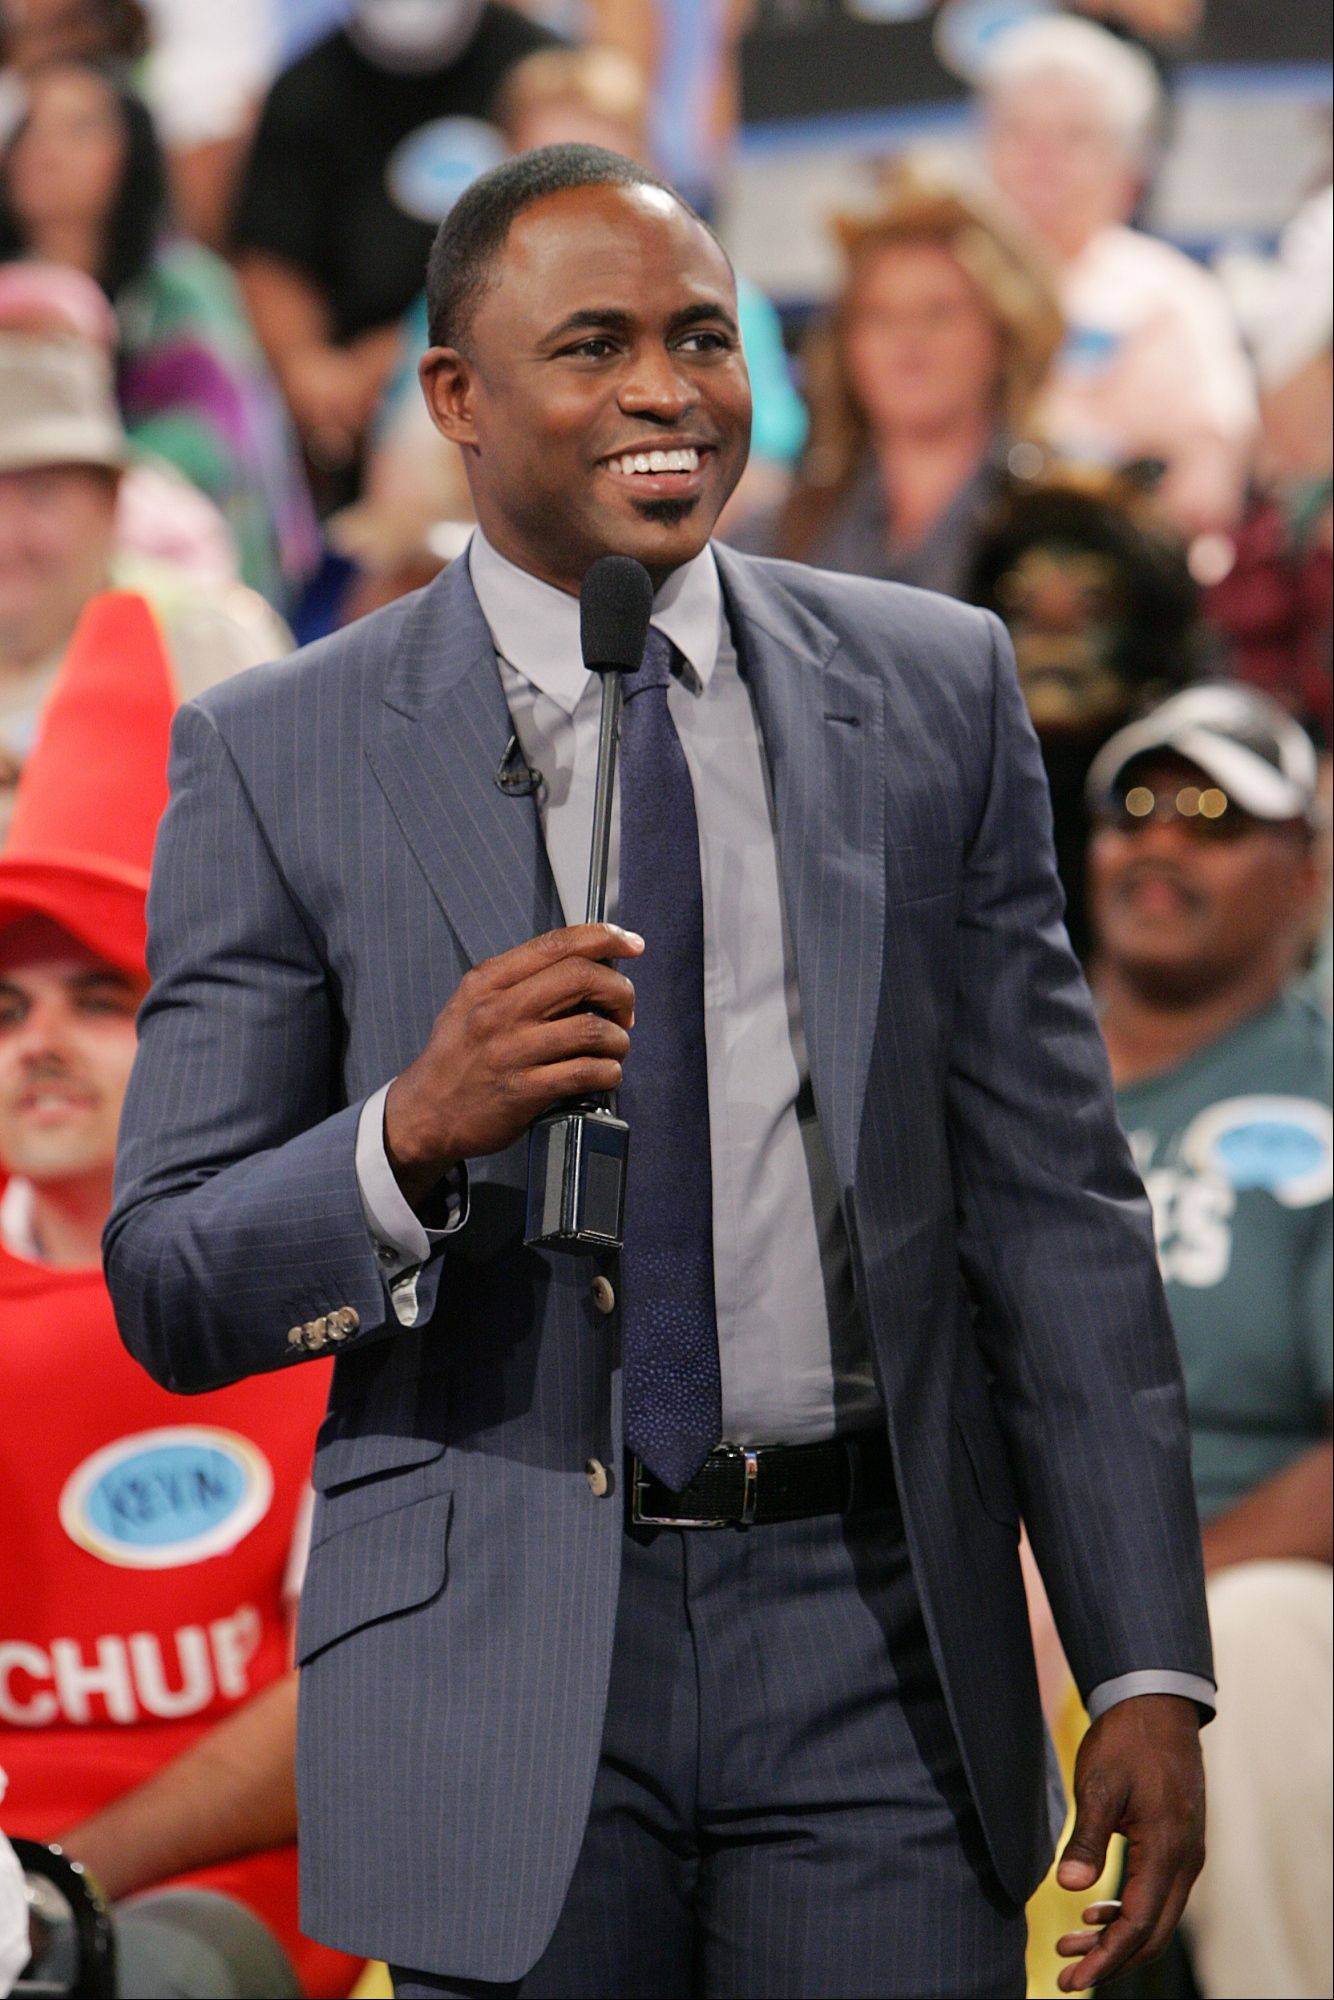 Comedian and TV host Wayne Brady will perform at the Chicago Theatre at 8 p.m. Friday, Feb. 28.